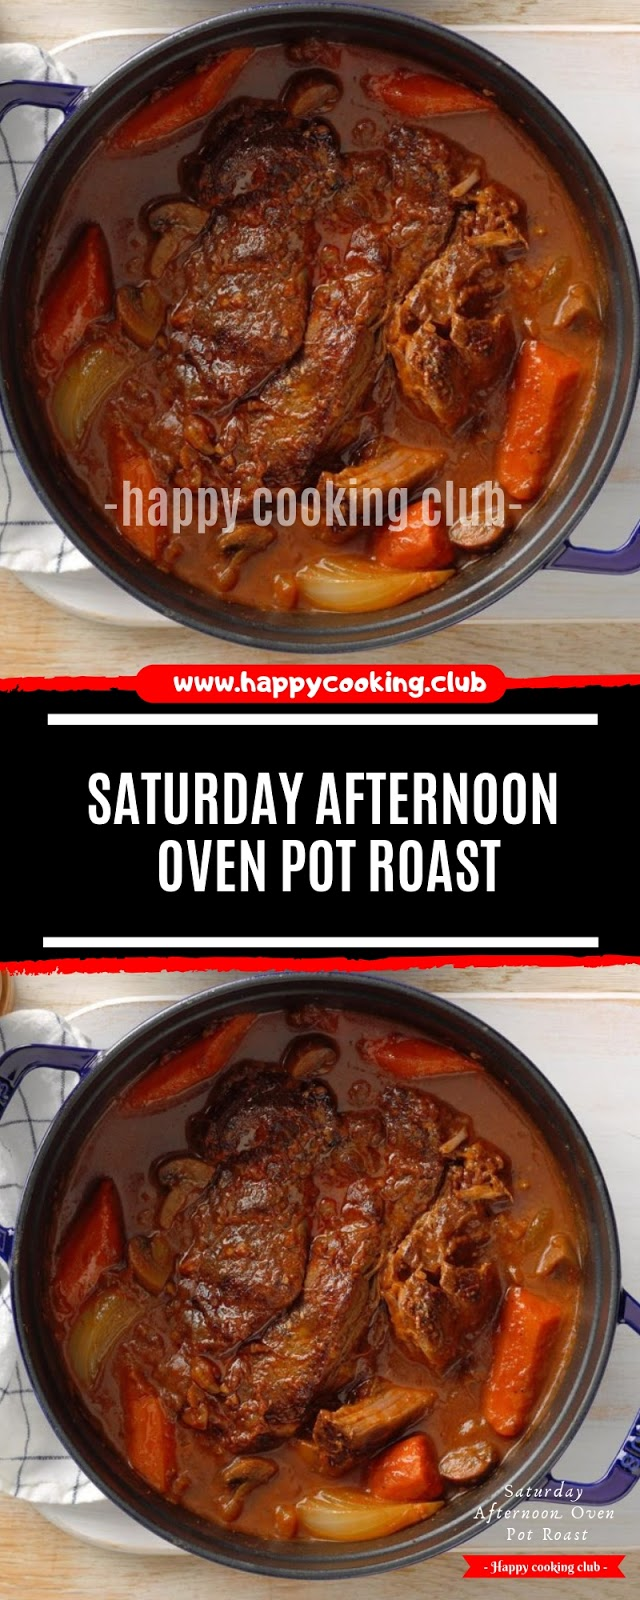 Saturday Afternoon Oven Pot Roast